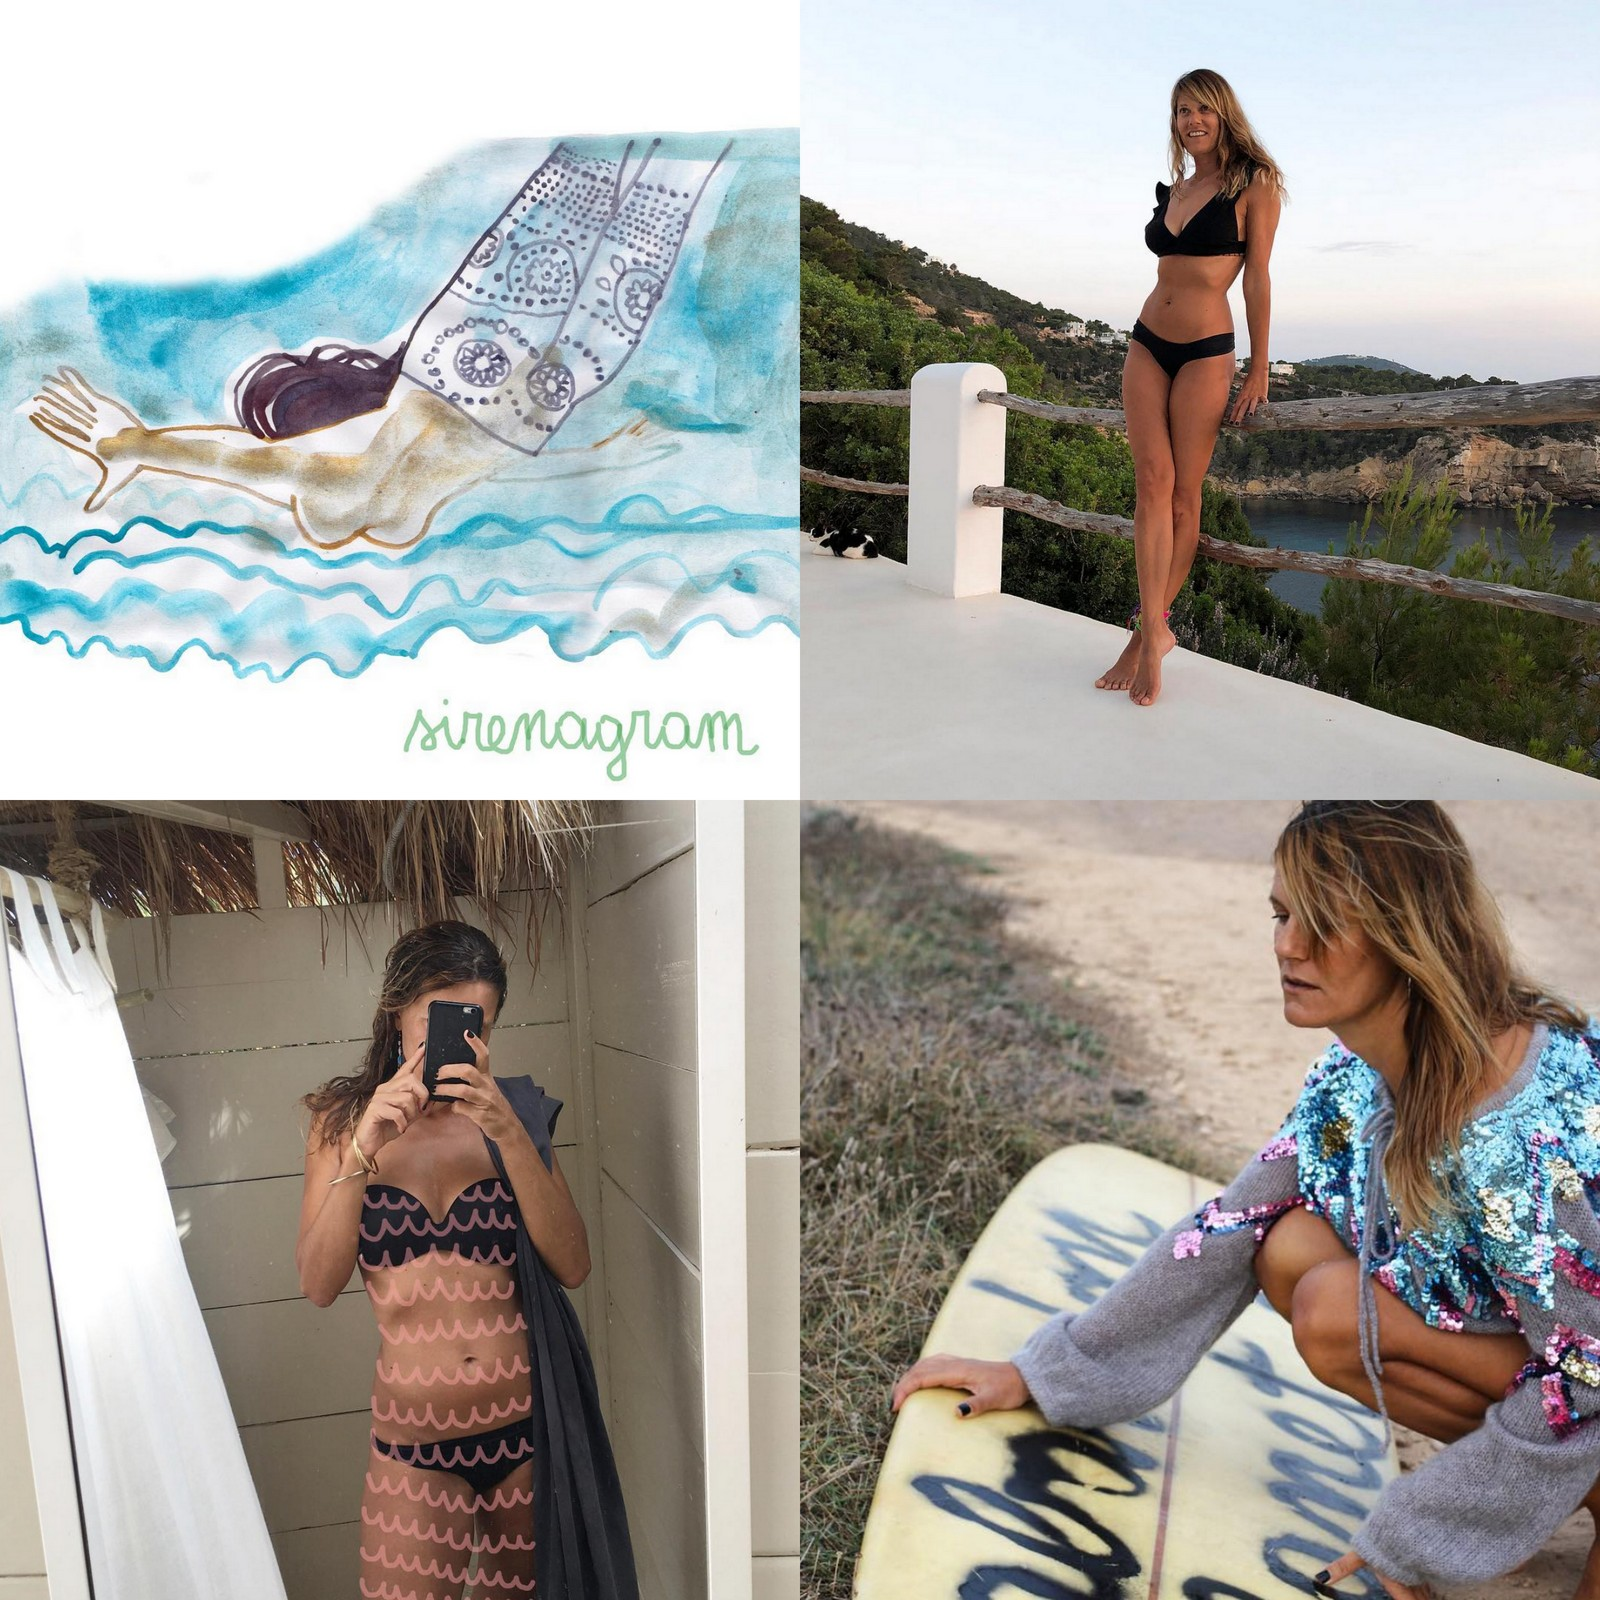 natalia resmini,dessins,illustration,les jolis dessins de,italie,surf,surfer girl, beach girl